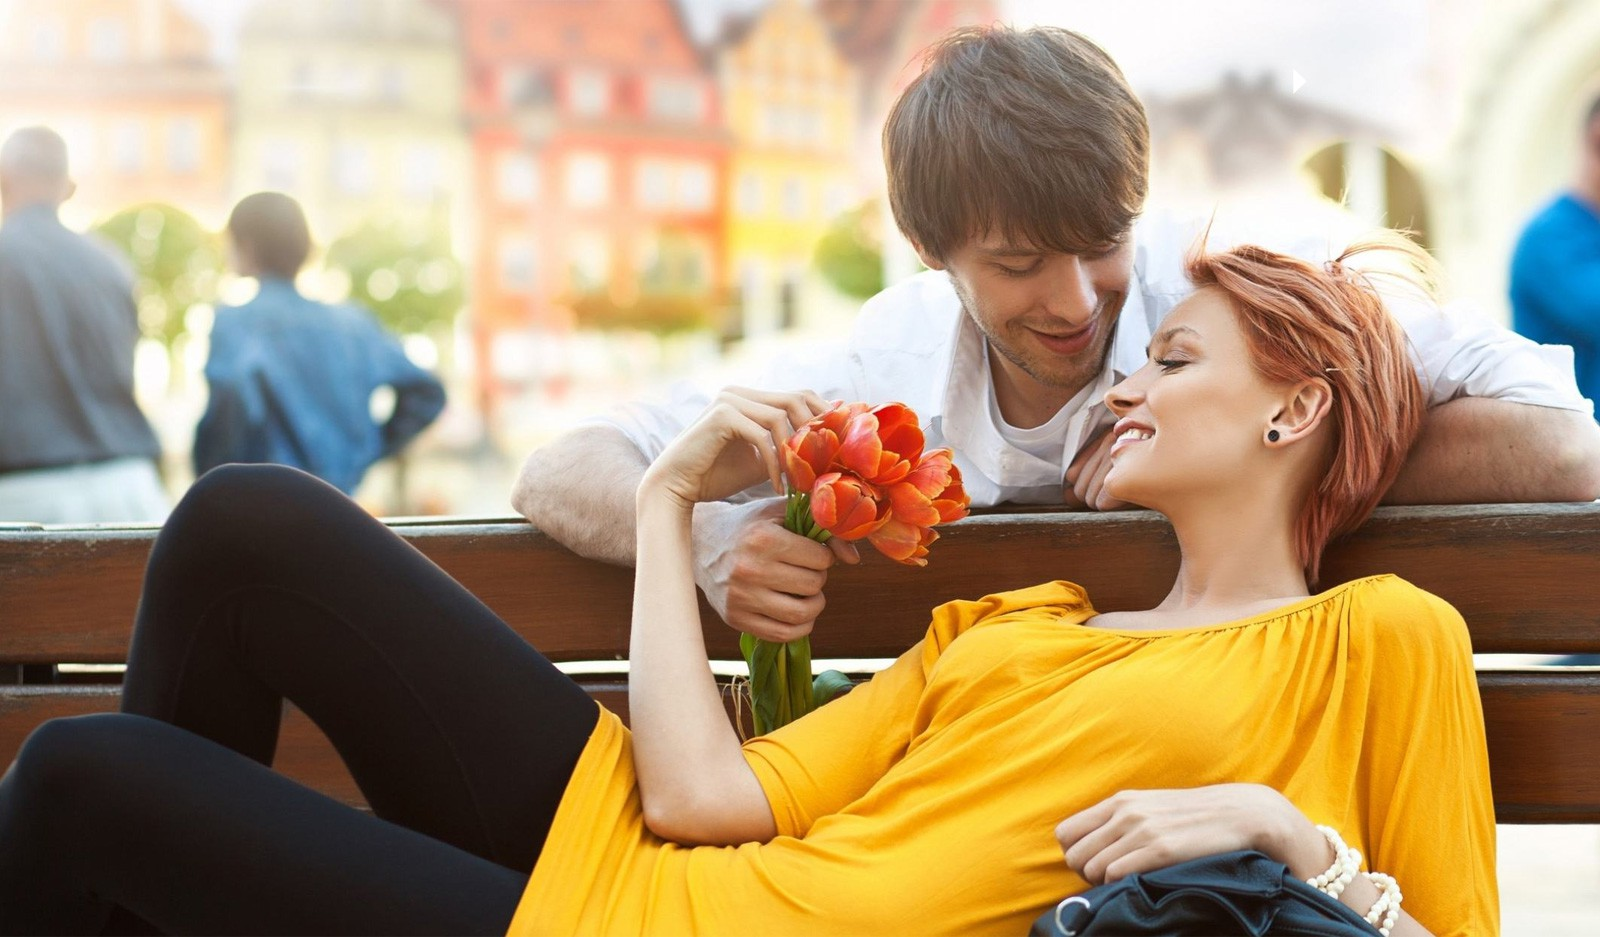 dating VeggieVisionDating.com the vegetarian and vegan dating portal.